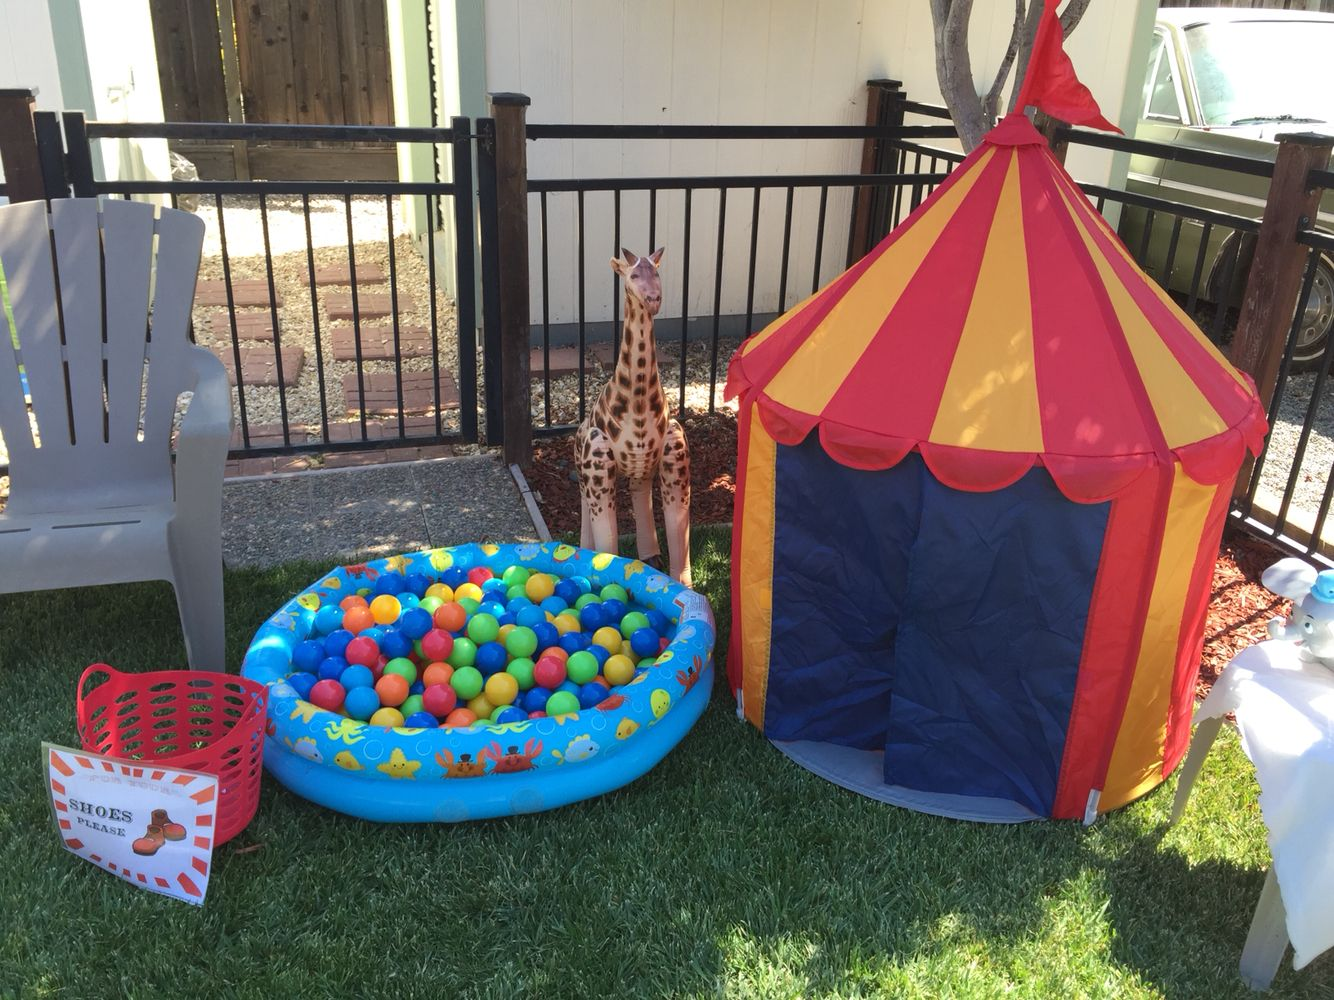 Circus Party Toddler Play Zone - DIY ball pit u0026 Ikea kids tent! & Circus Party Toddler Play Zone - DIY ball pit u0026 Ikea kids tent ...